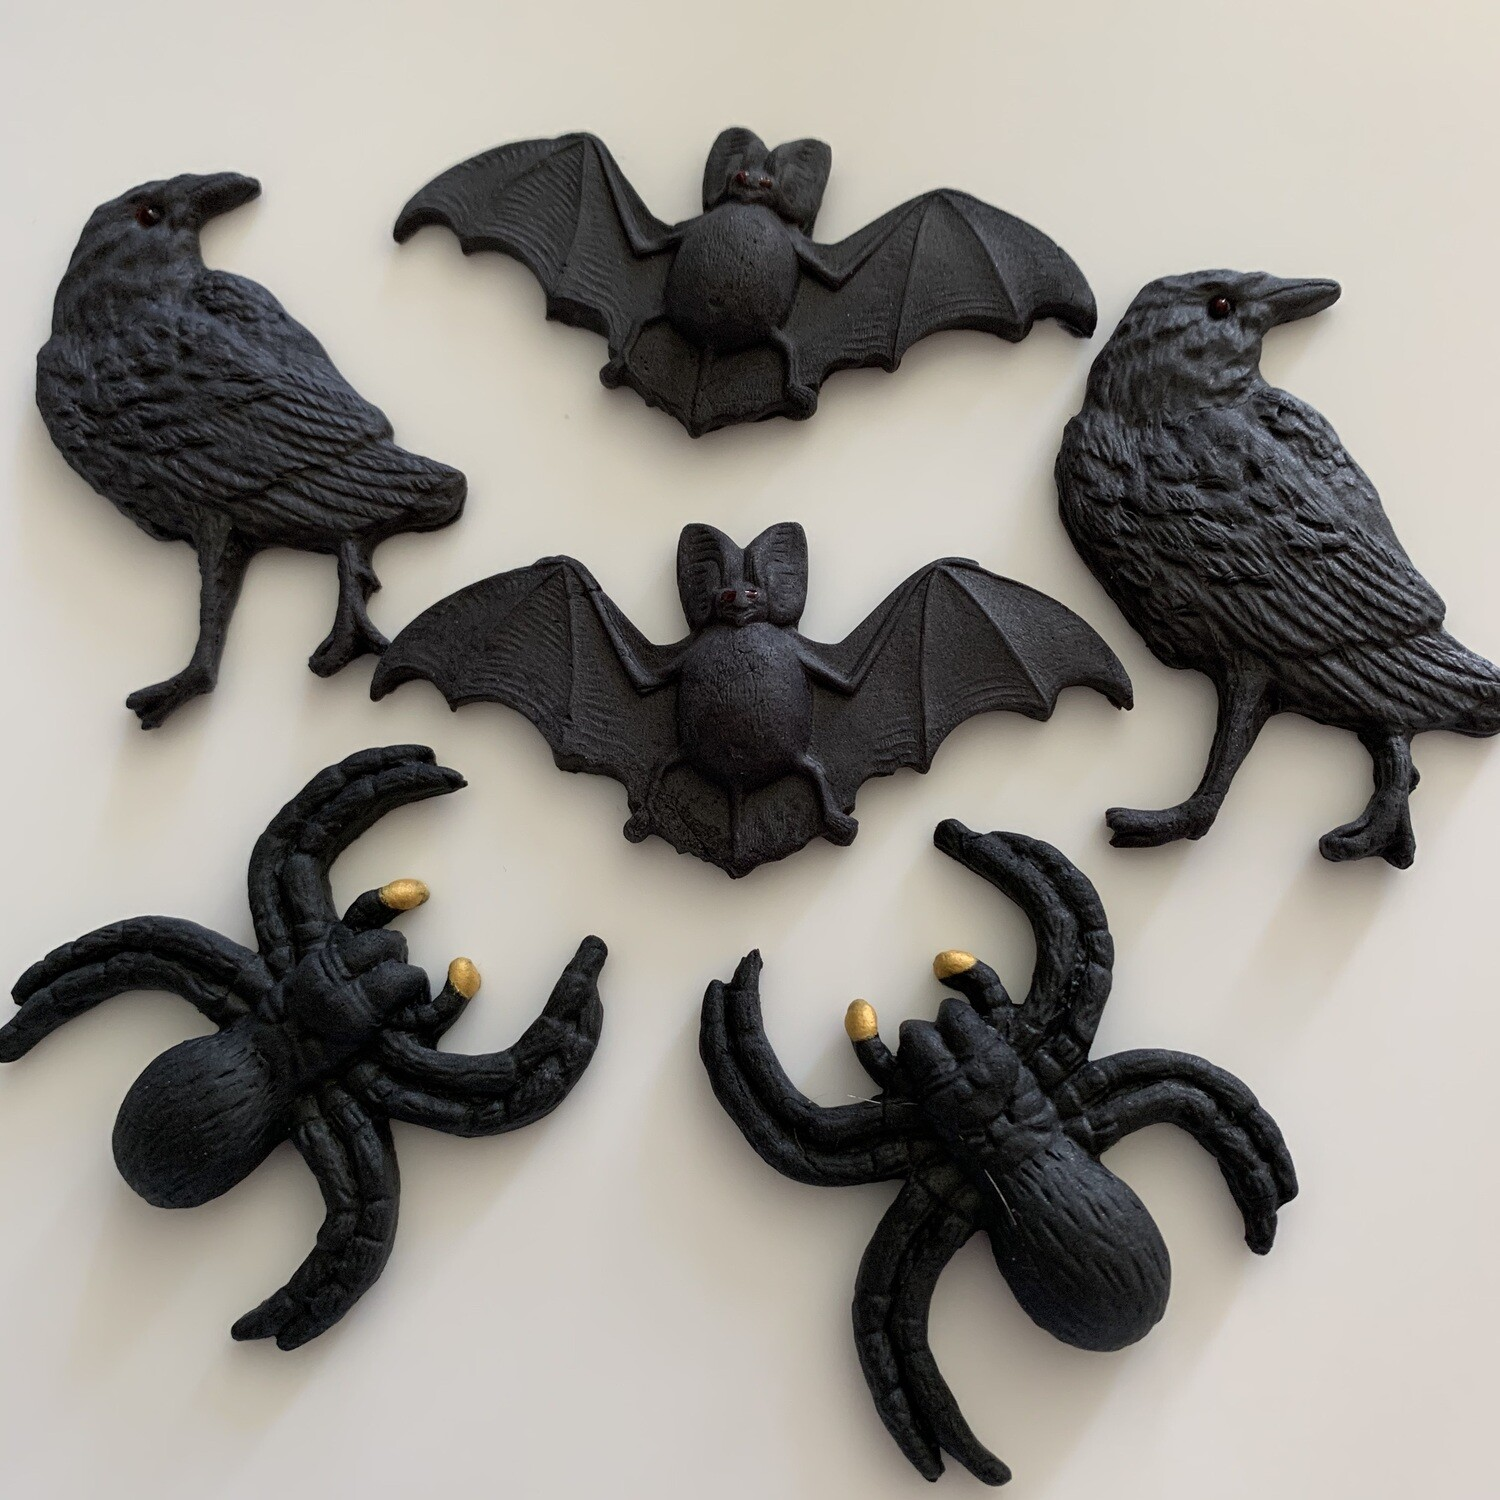 Bats Crows & Spiders